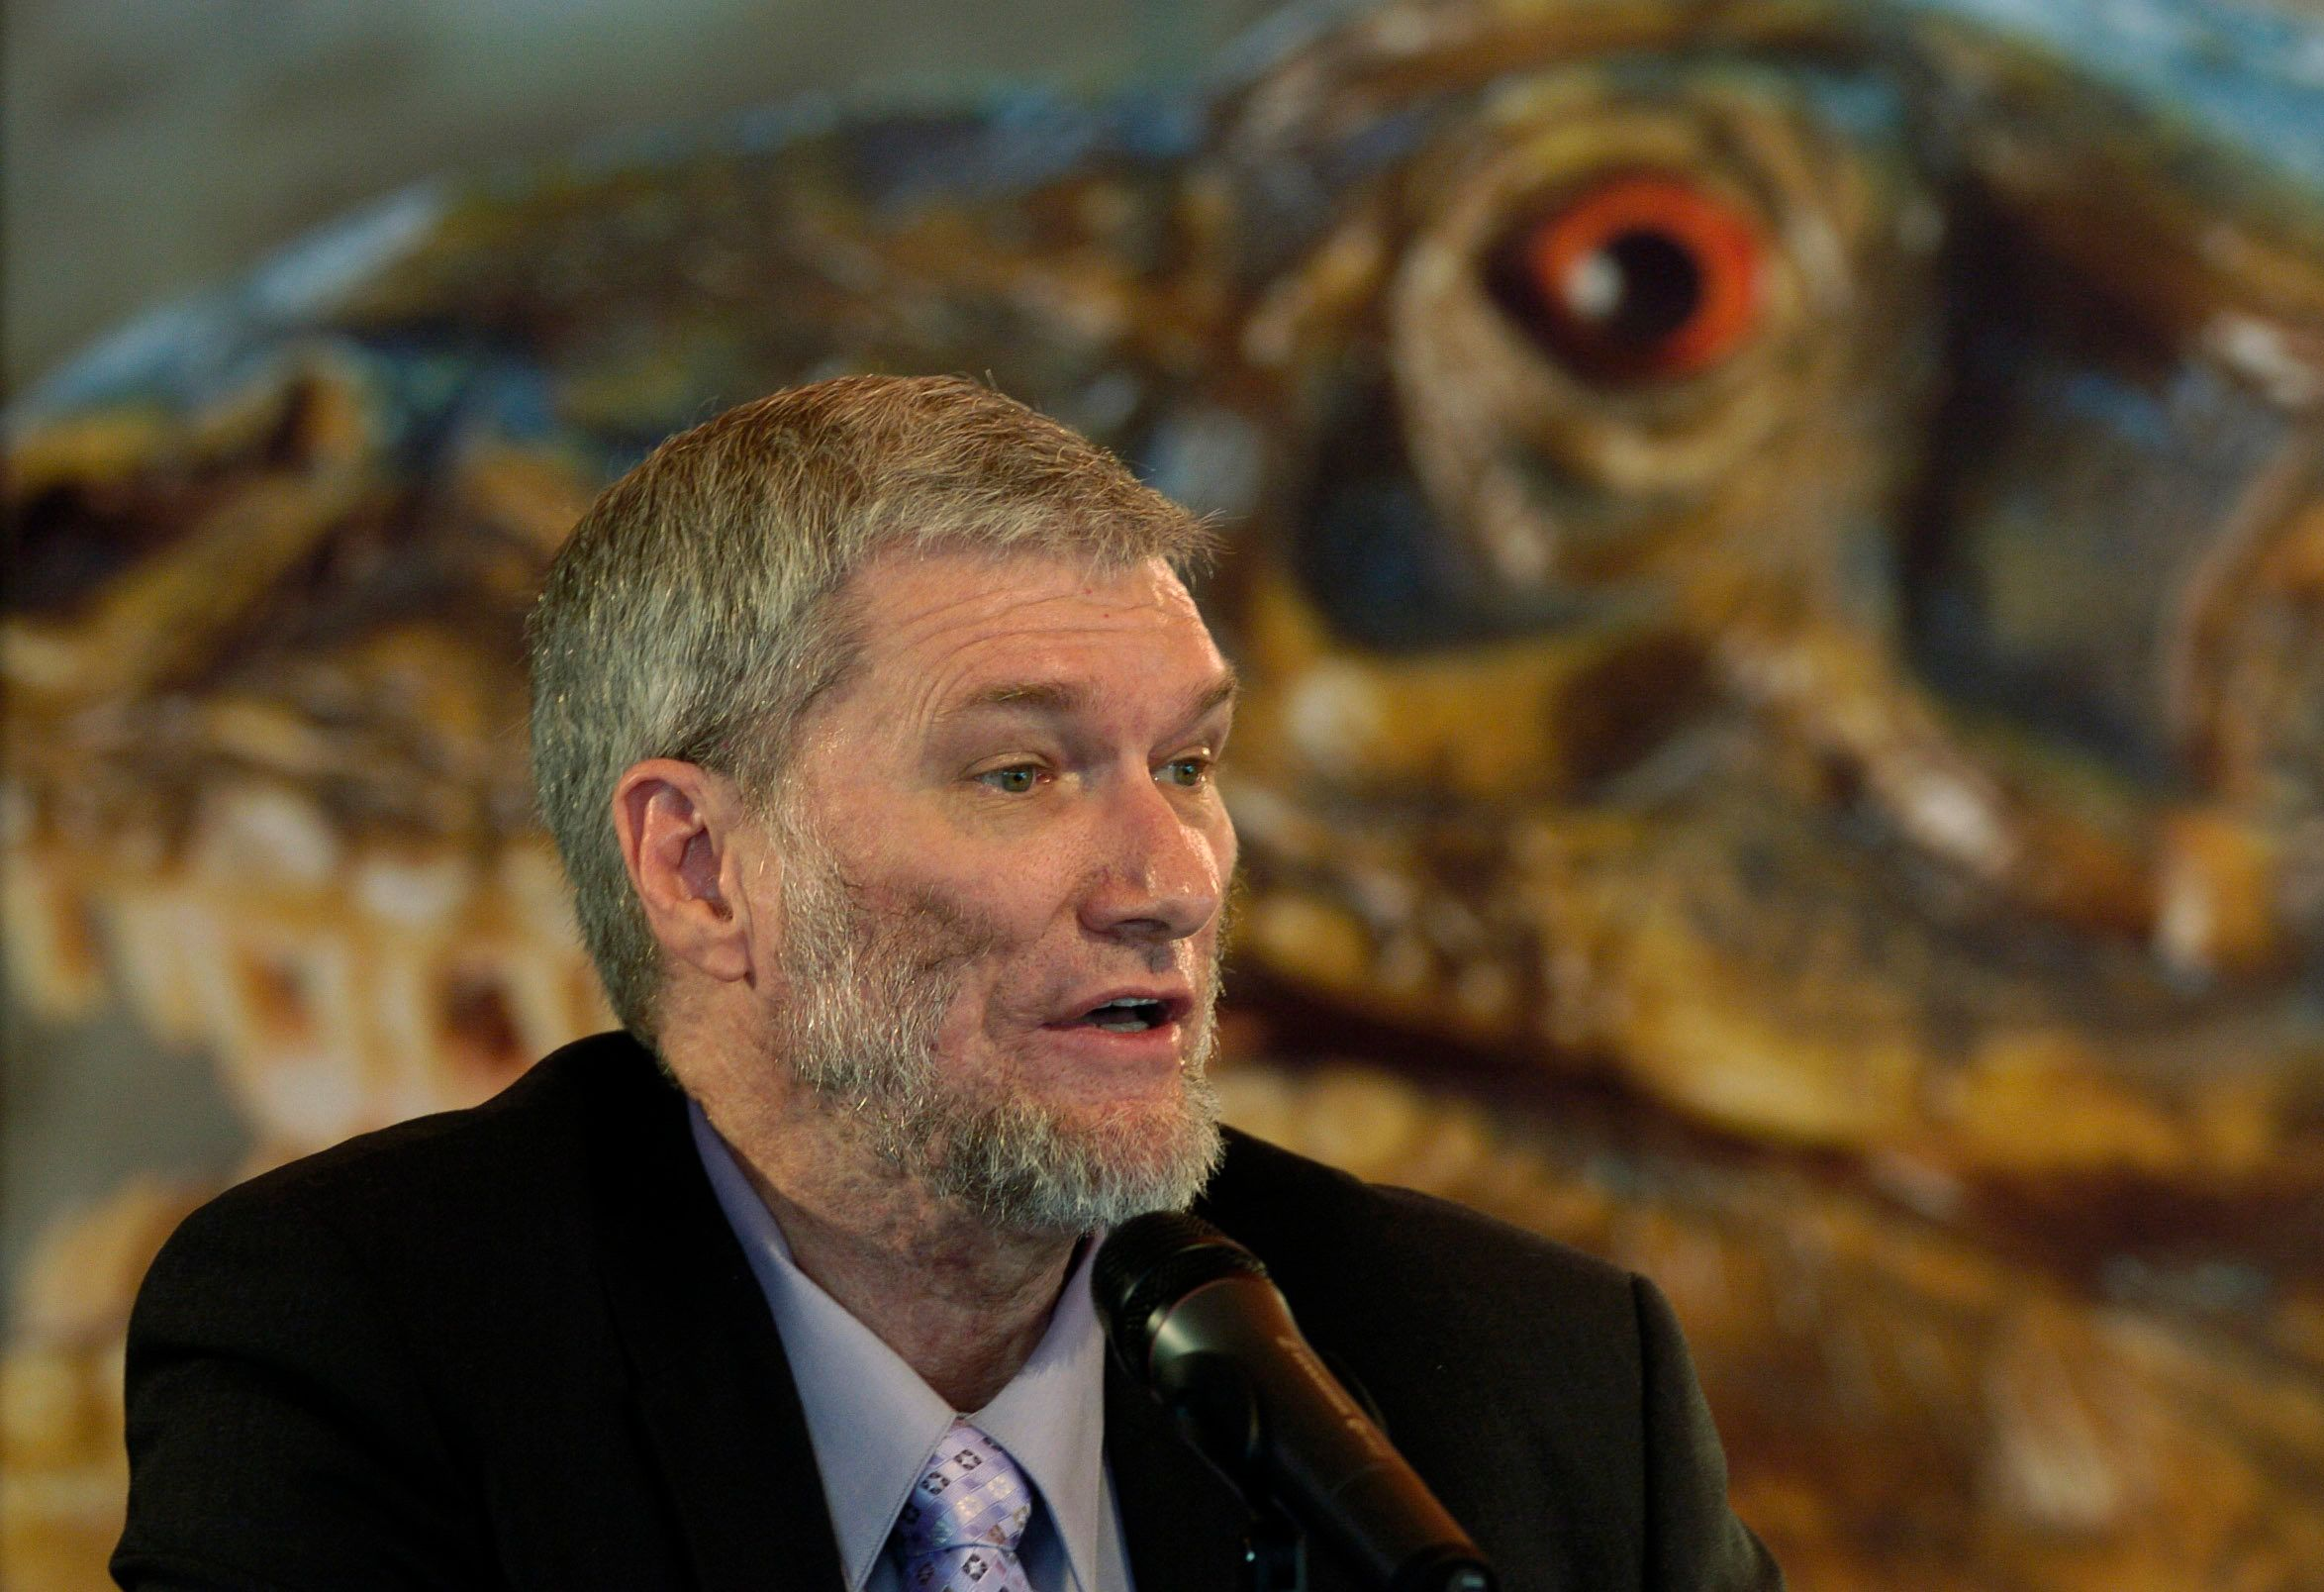 Creationist Ken Ham believes some dinosaurs sailed on Noah's Ark to survive the flood depicted in the Bible.